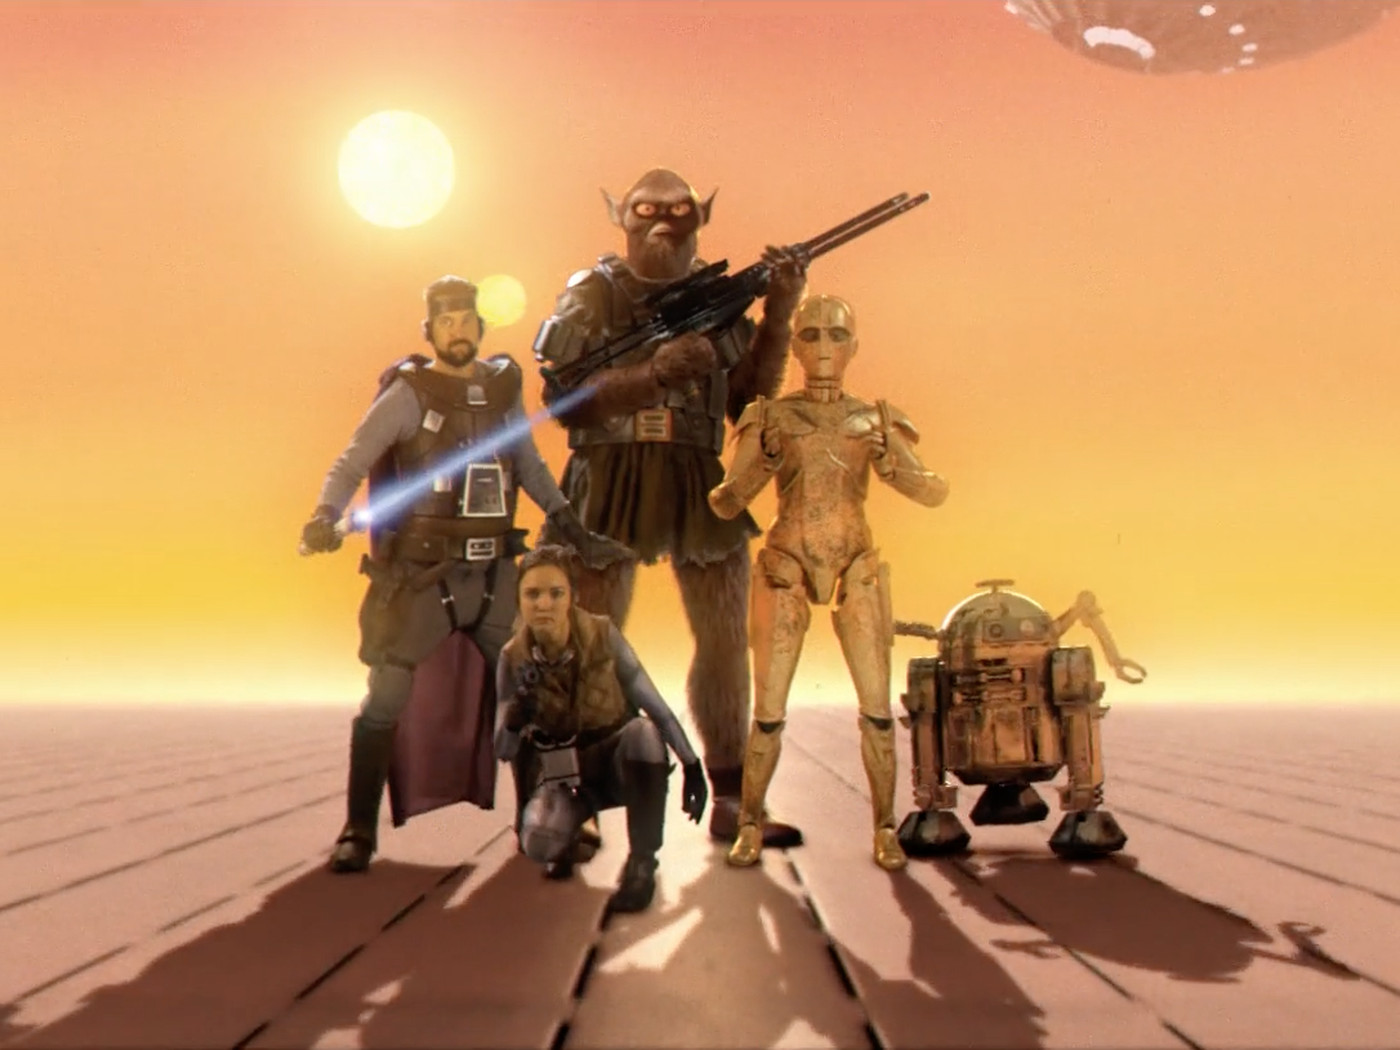 Ralph Mcquarrie S Star Wars Concept Art Comes To Life In This Delightful Short Film The Verge